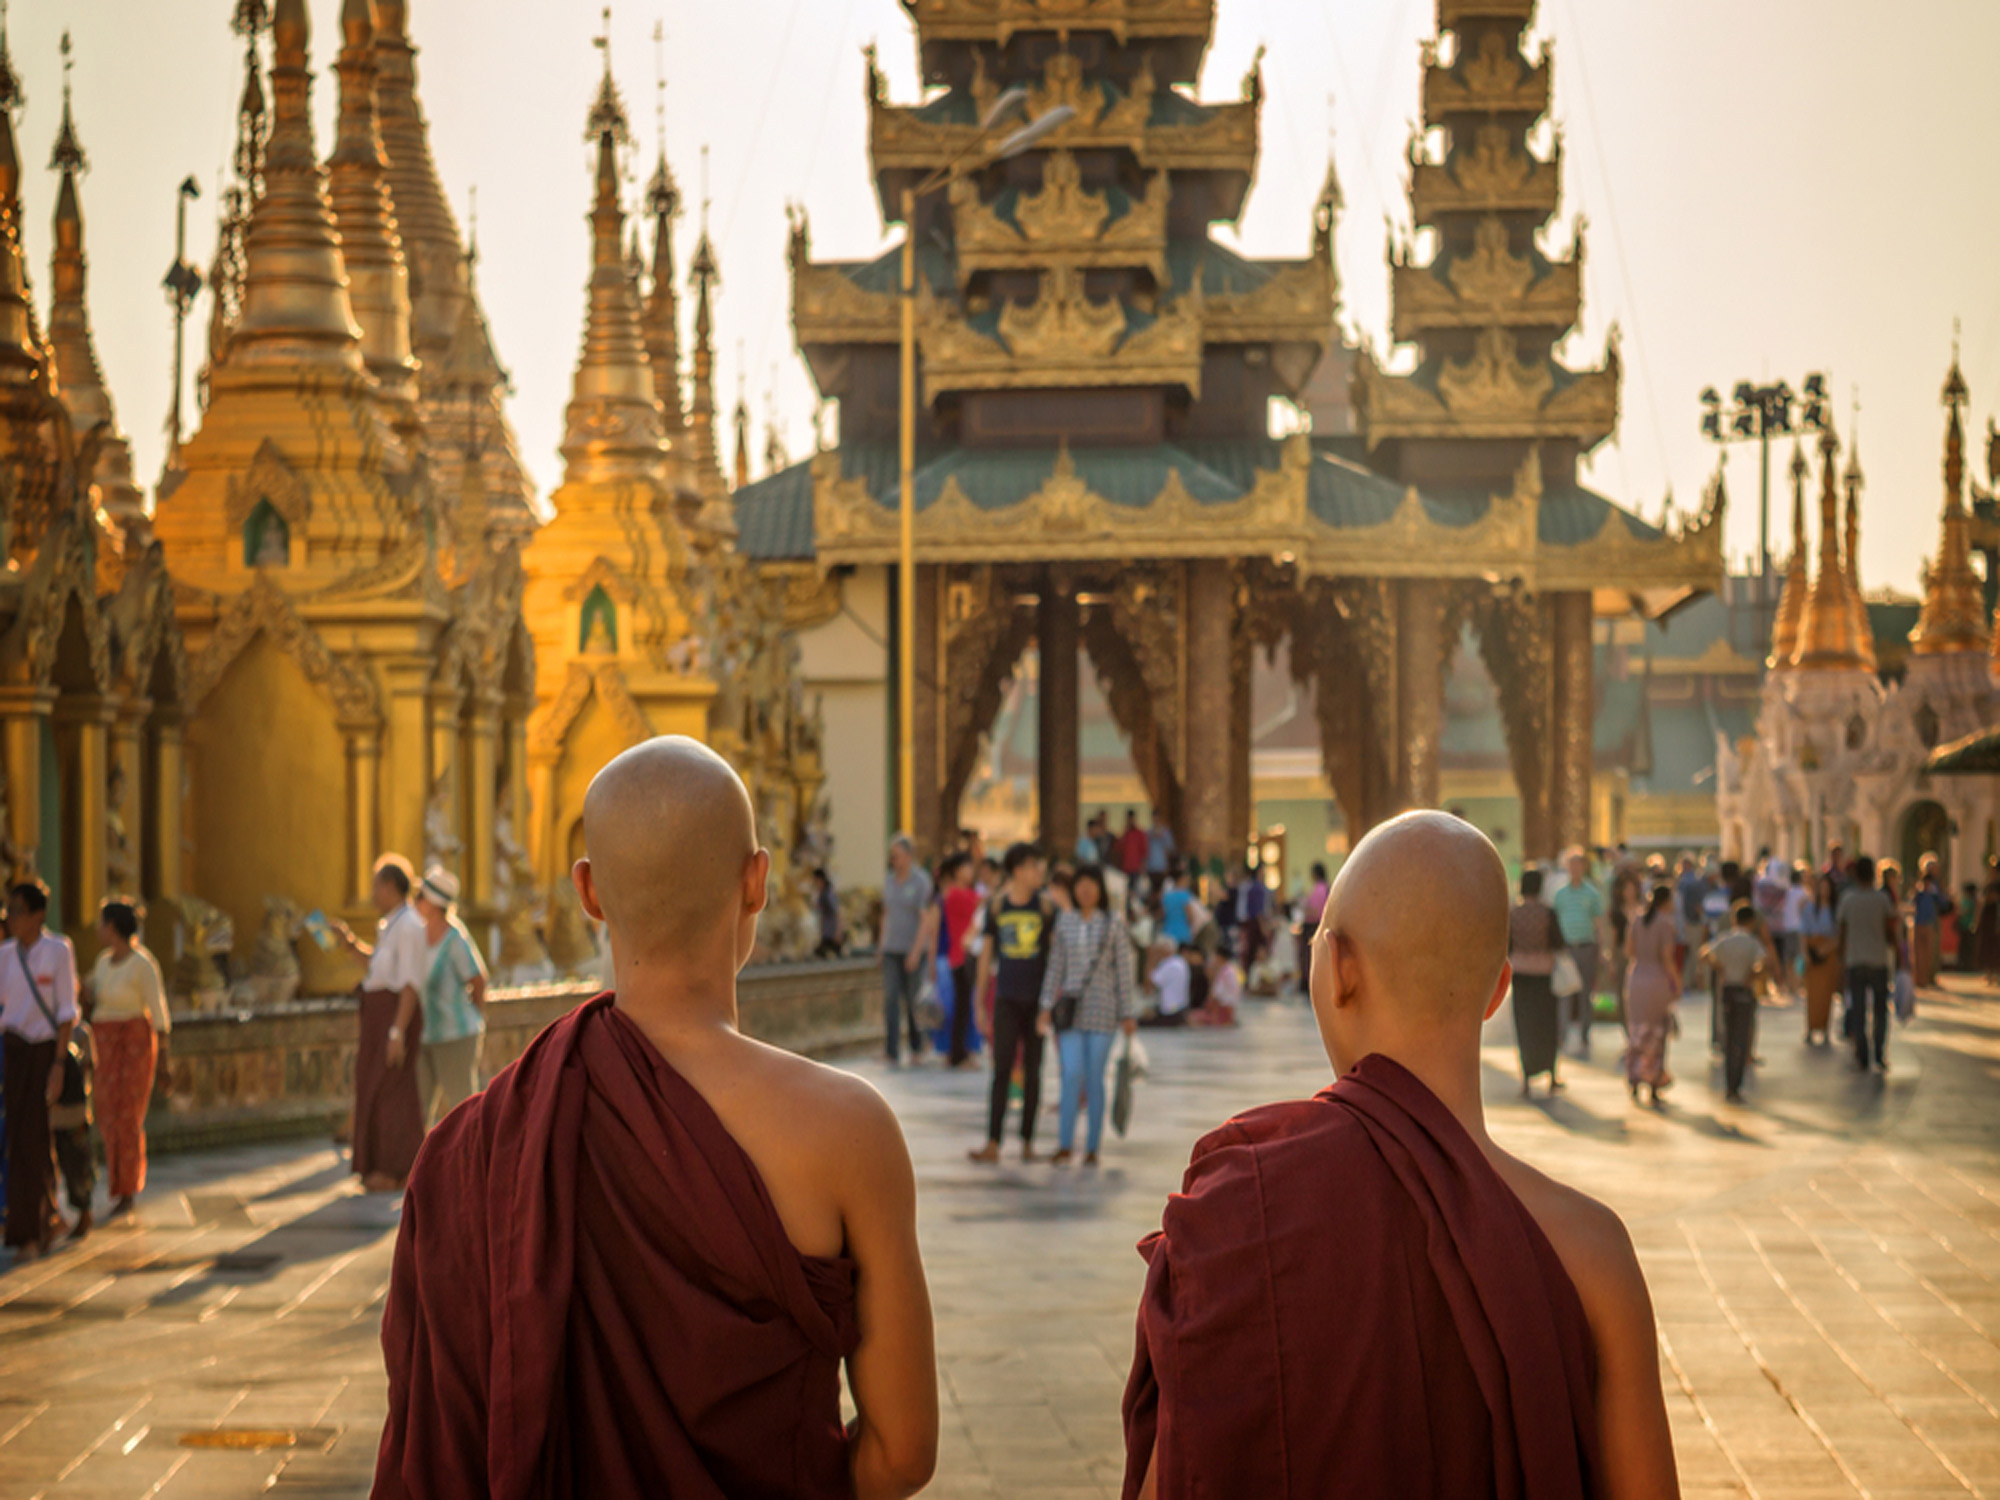 Monks-at-Shwedagon-Pagoda-in-Yangon,-Burma-Myanmar